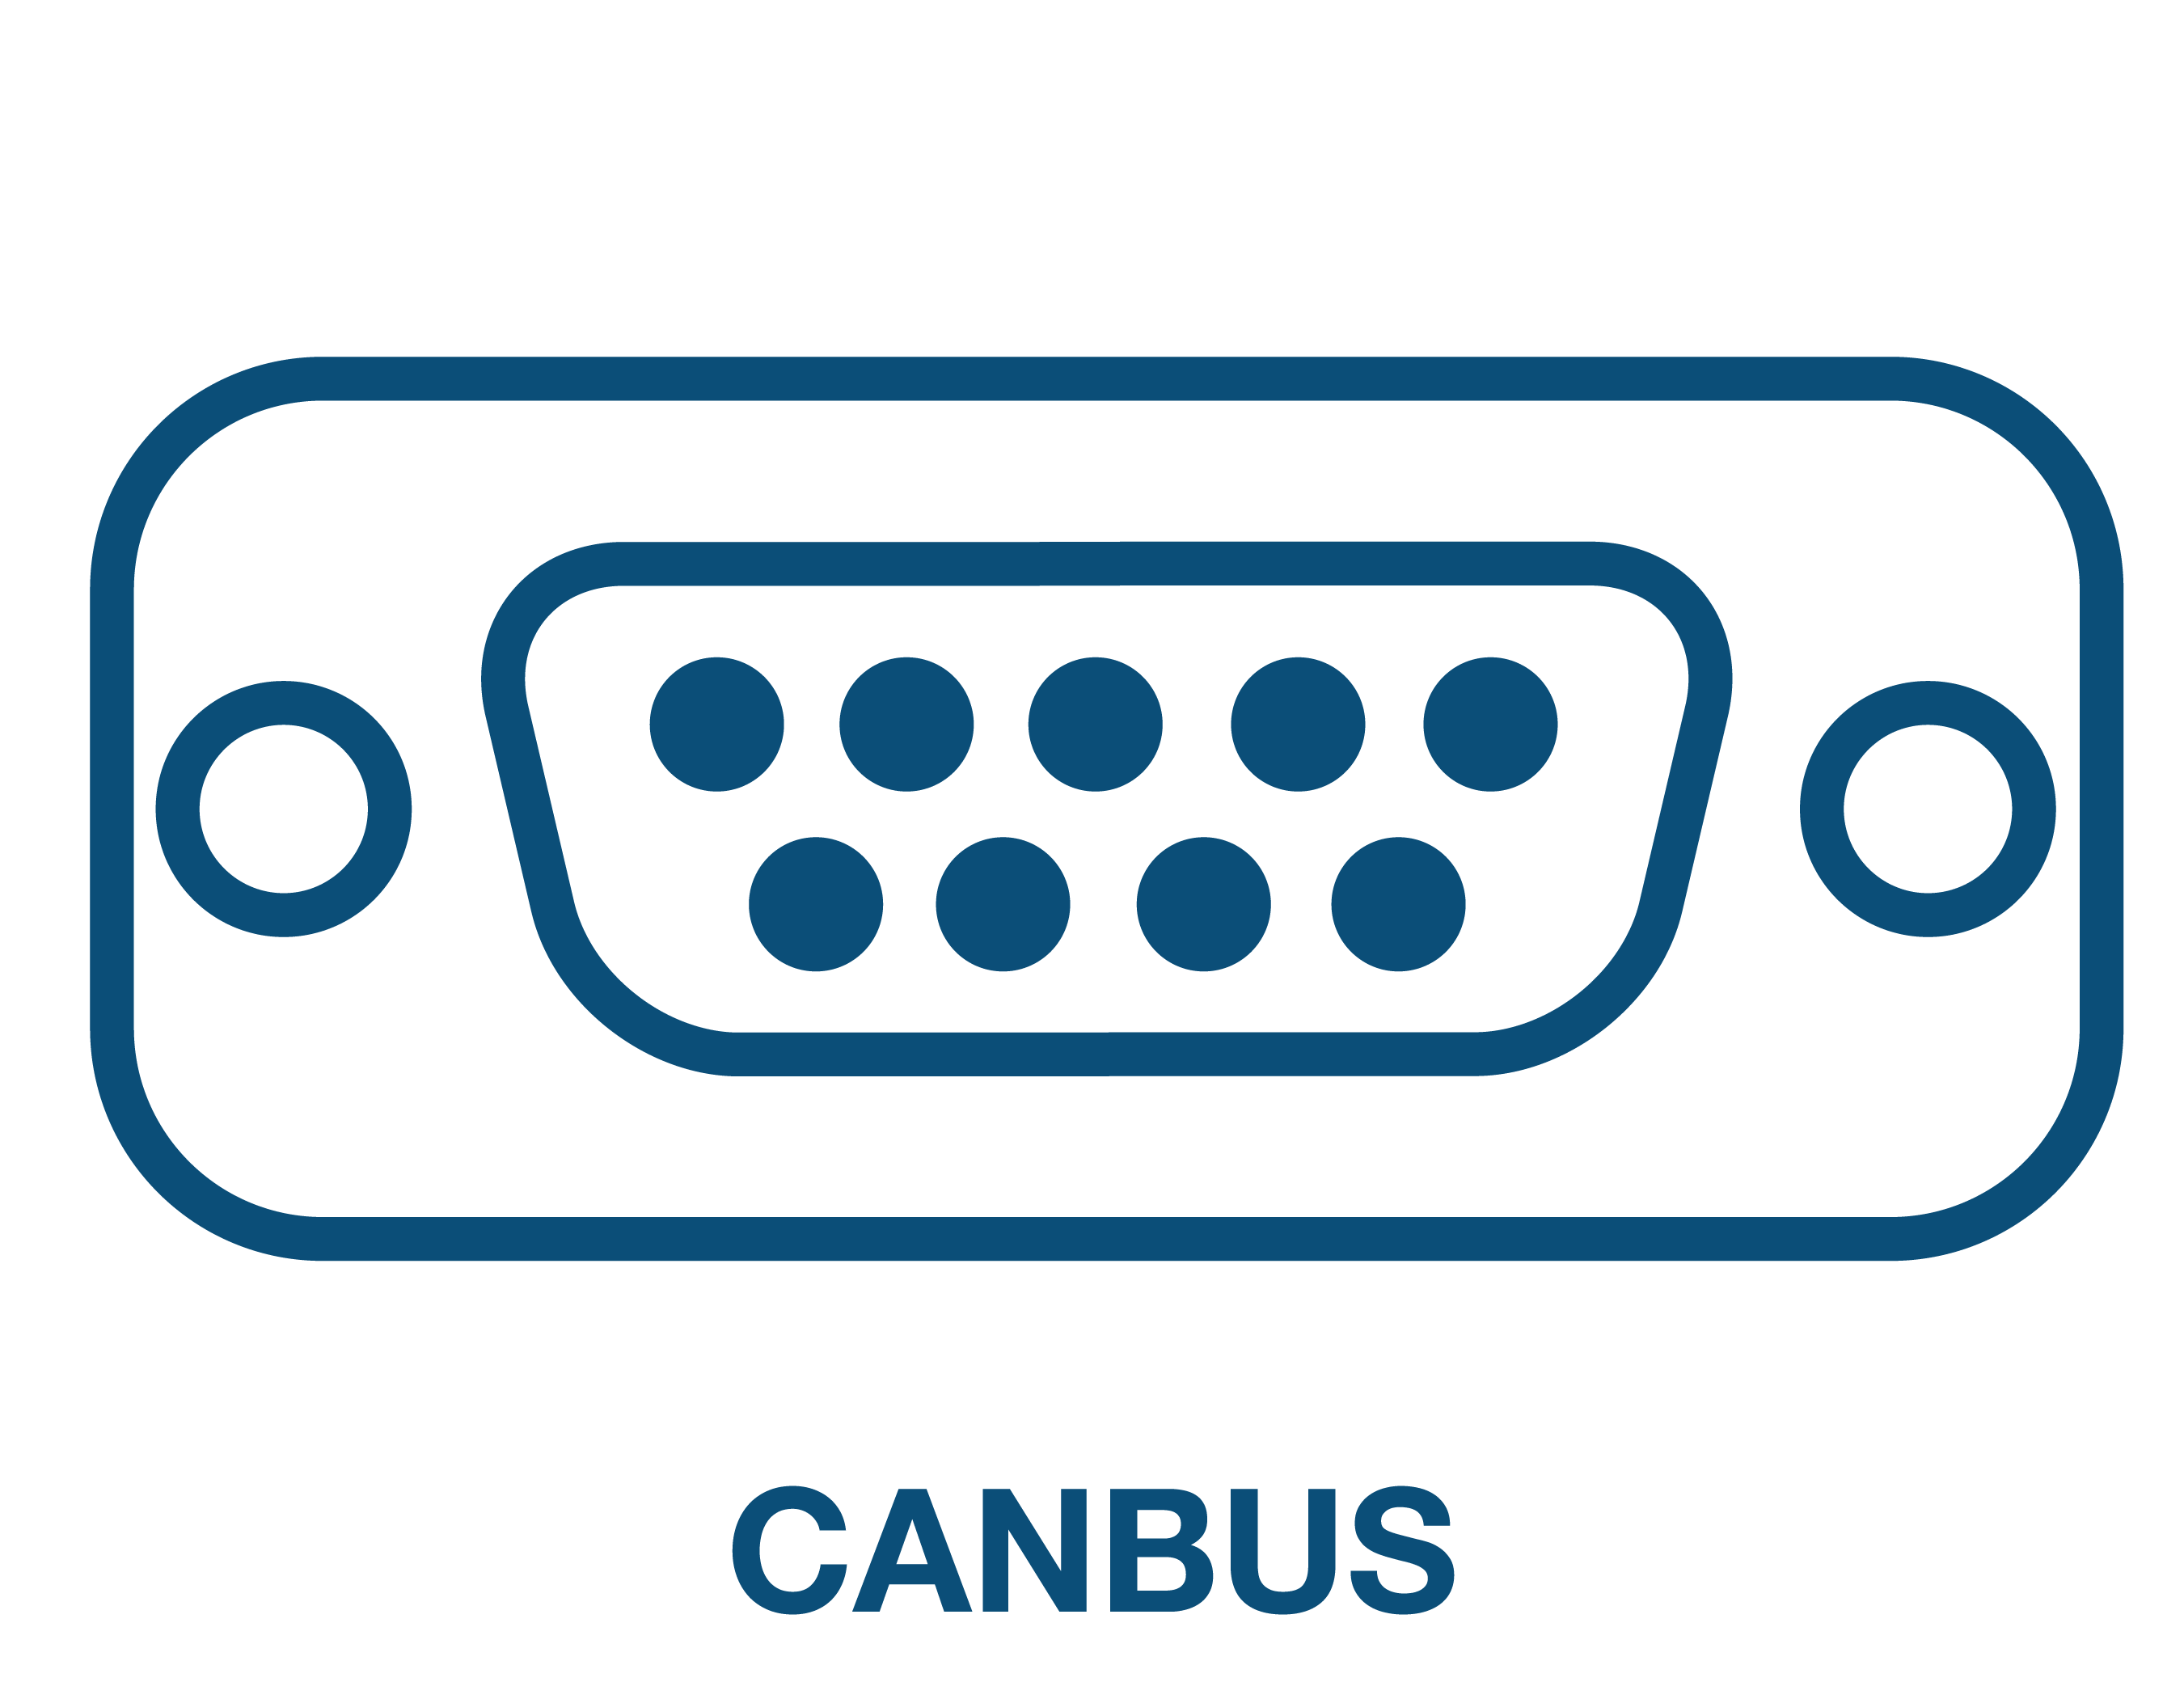 CANbus x 1